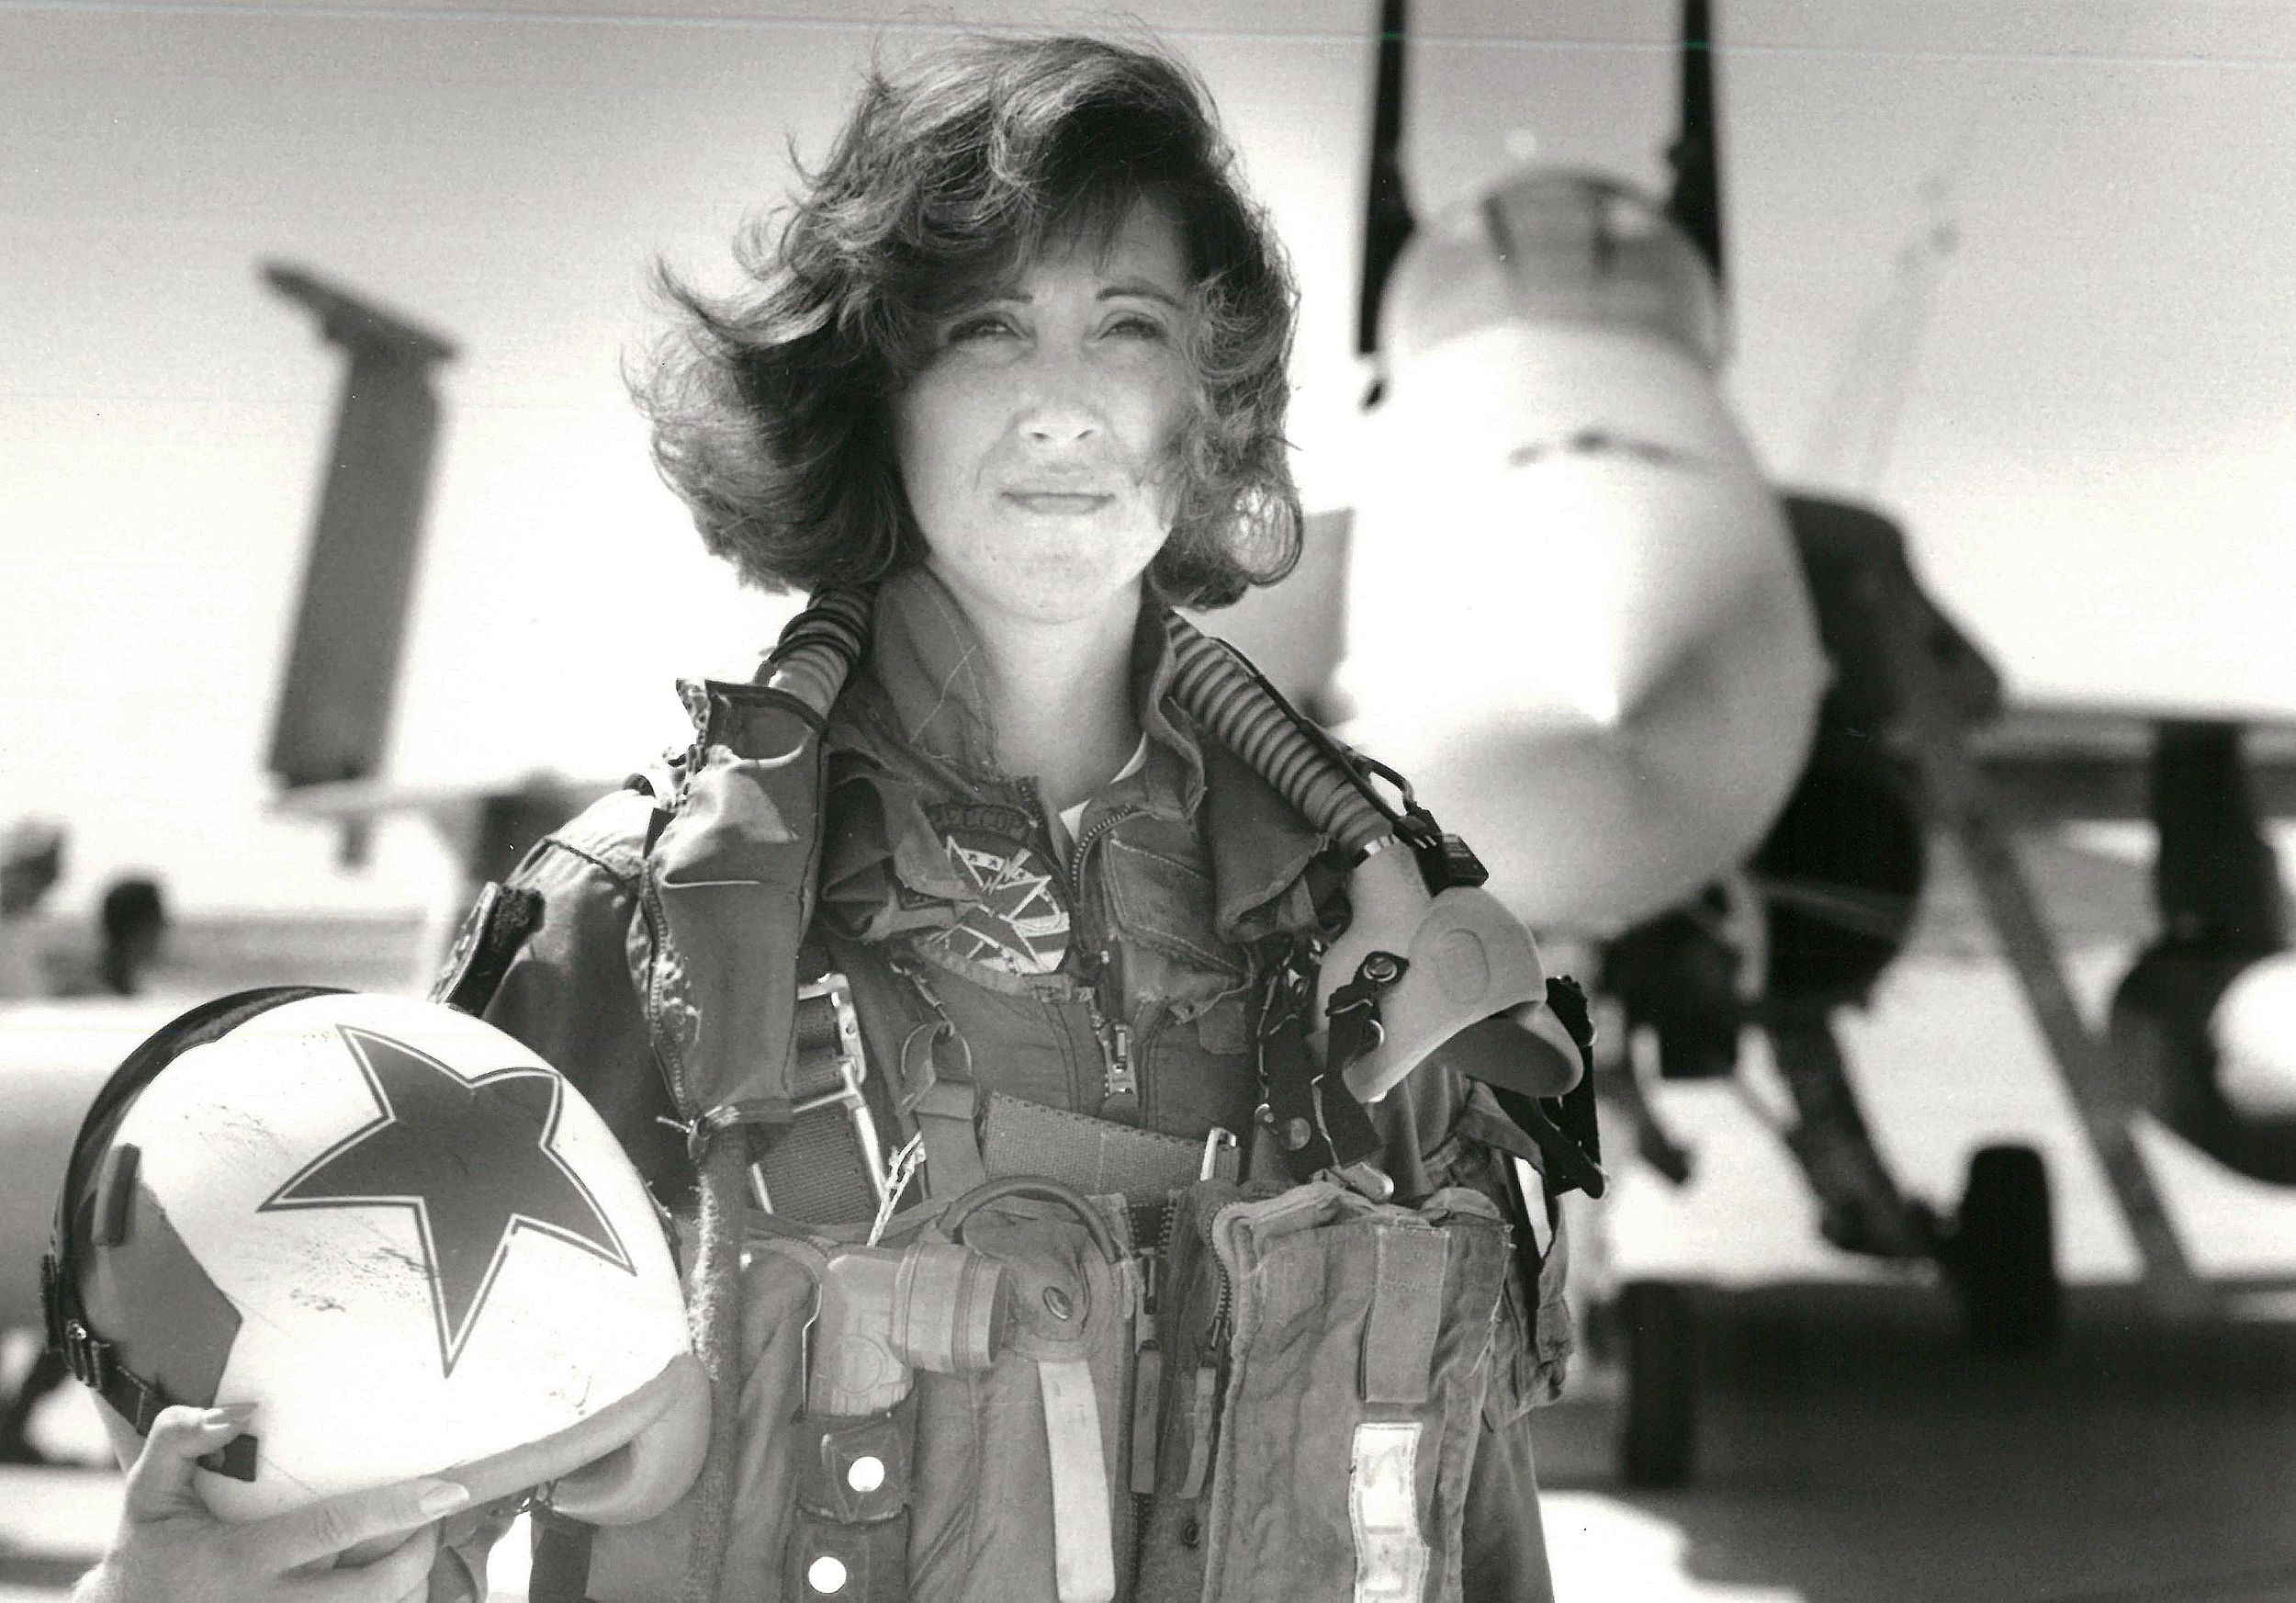 e81123ab Tammie Jo Shults, who landed crippled Southwest plane, was one of first  female fighter pilots in U.S. Navy